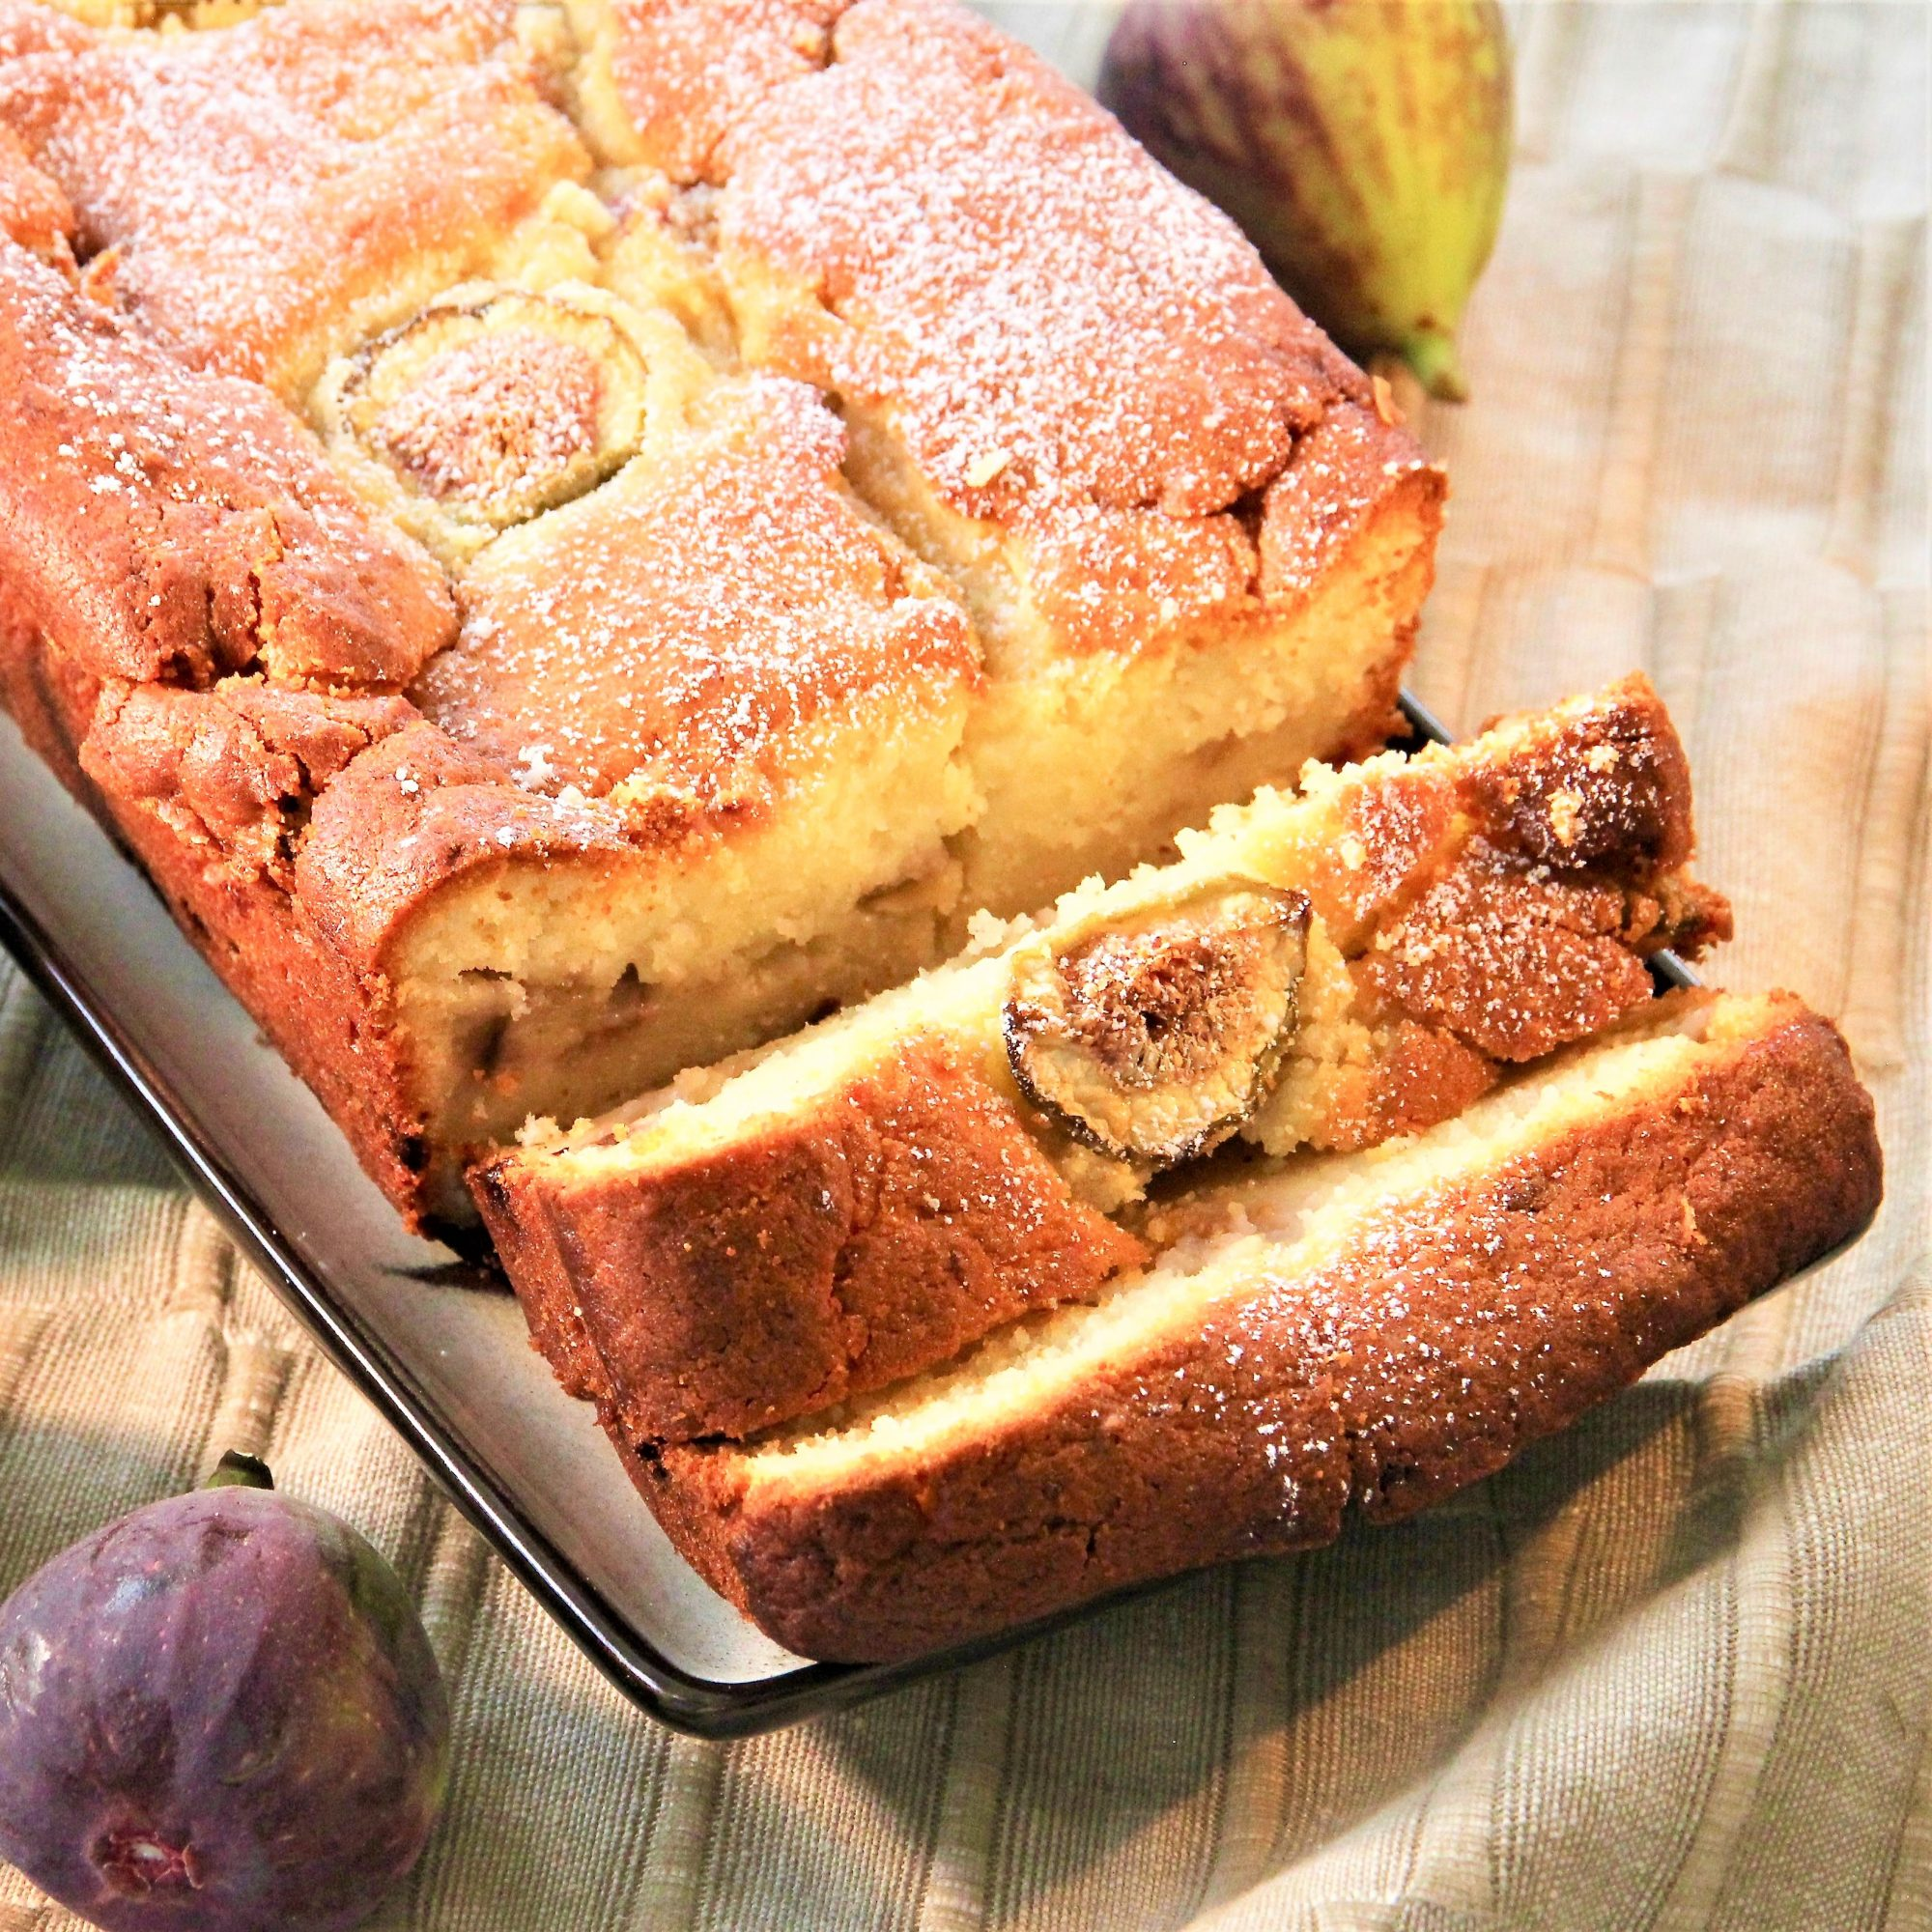 a sliced loaf cake with figs on the side